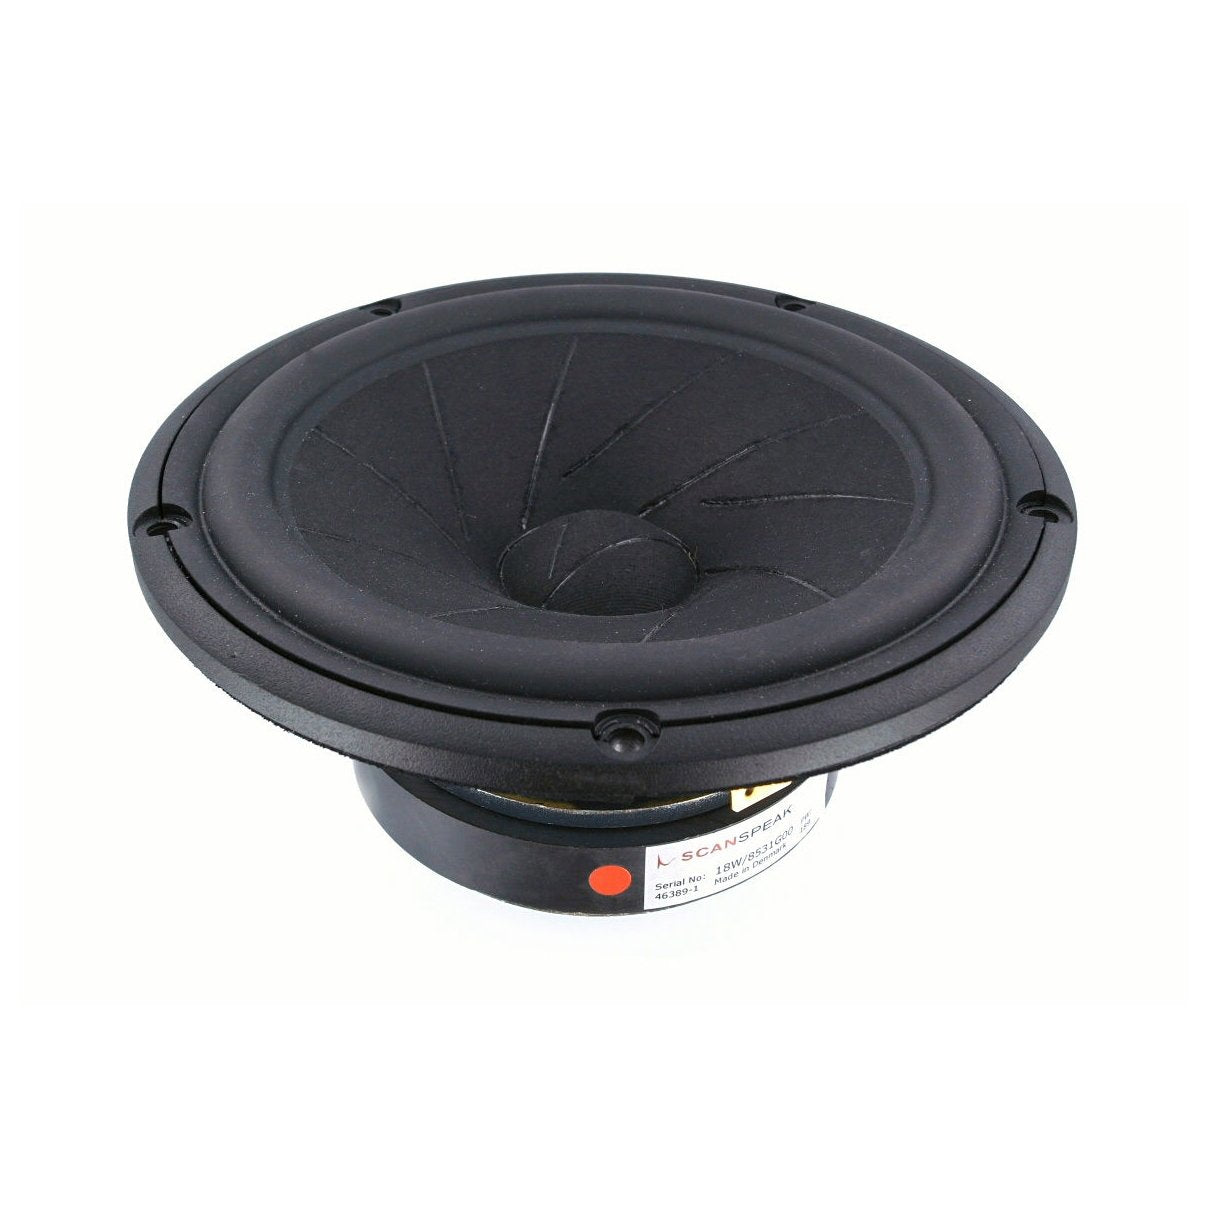 Scanspeak Revelator 18W/8531G00 Midwoofer - Willys-Hifi Ltd